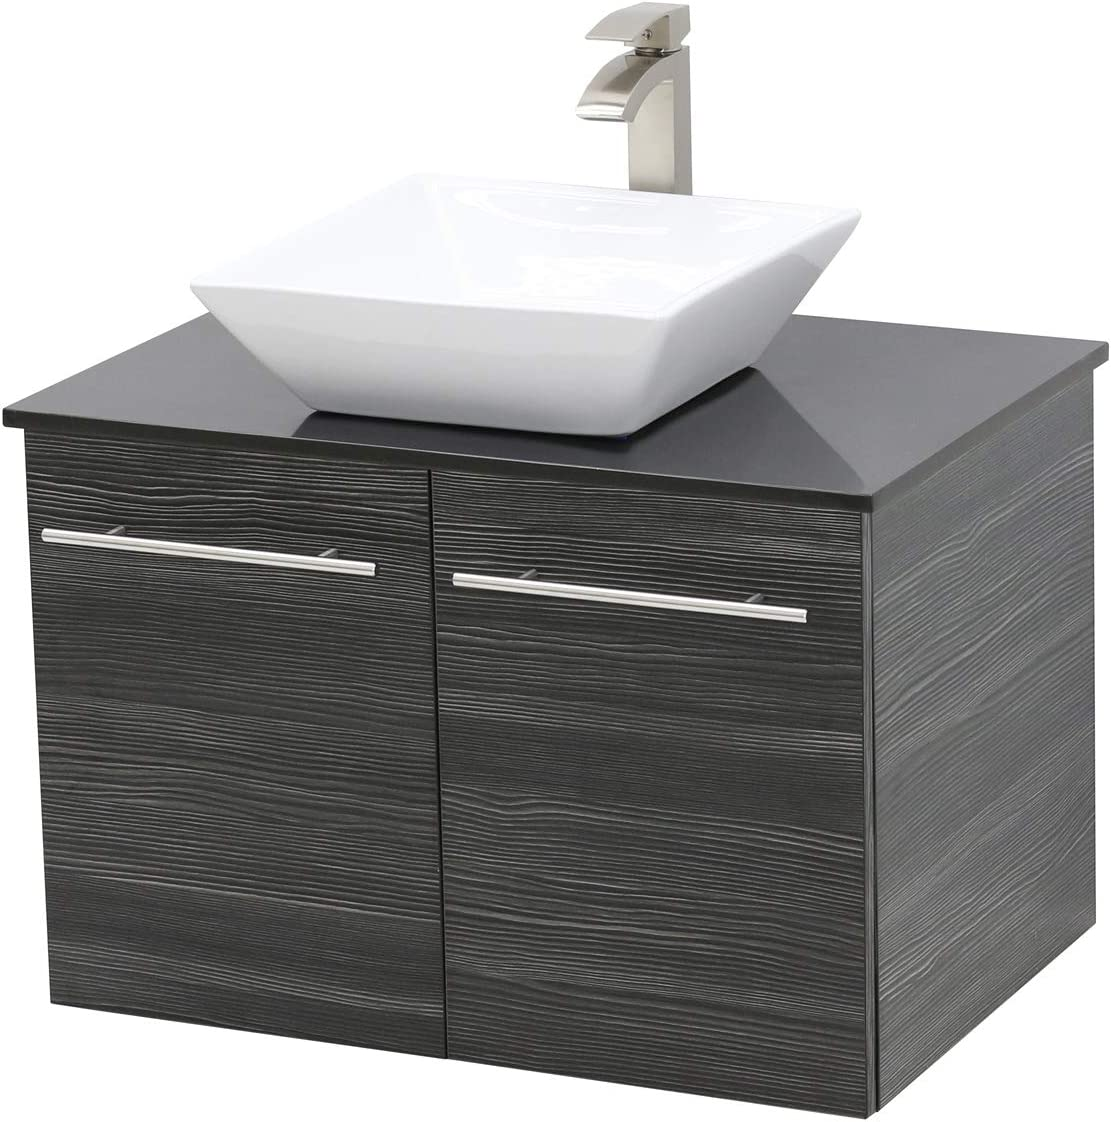 WindBay Wall Mount Floating Bathroom Vanity Sink Set. Dark Grey Vanity, Black Flat Stone Countertop Ceramic Sink – 30